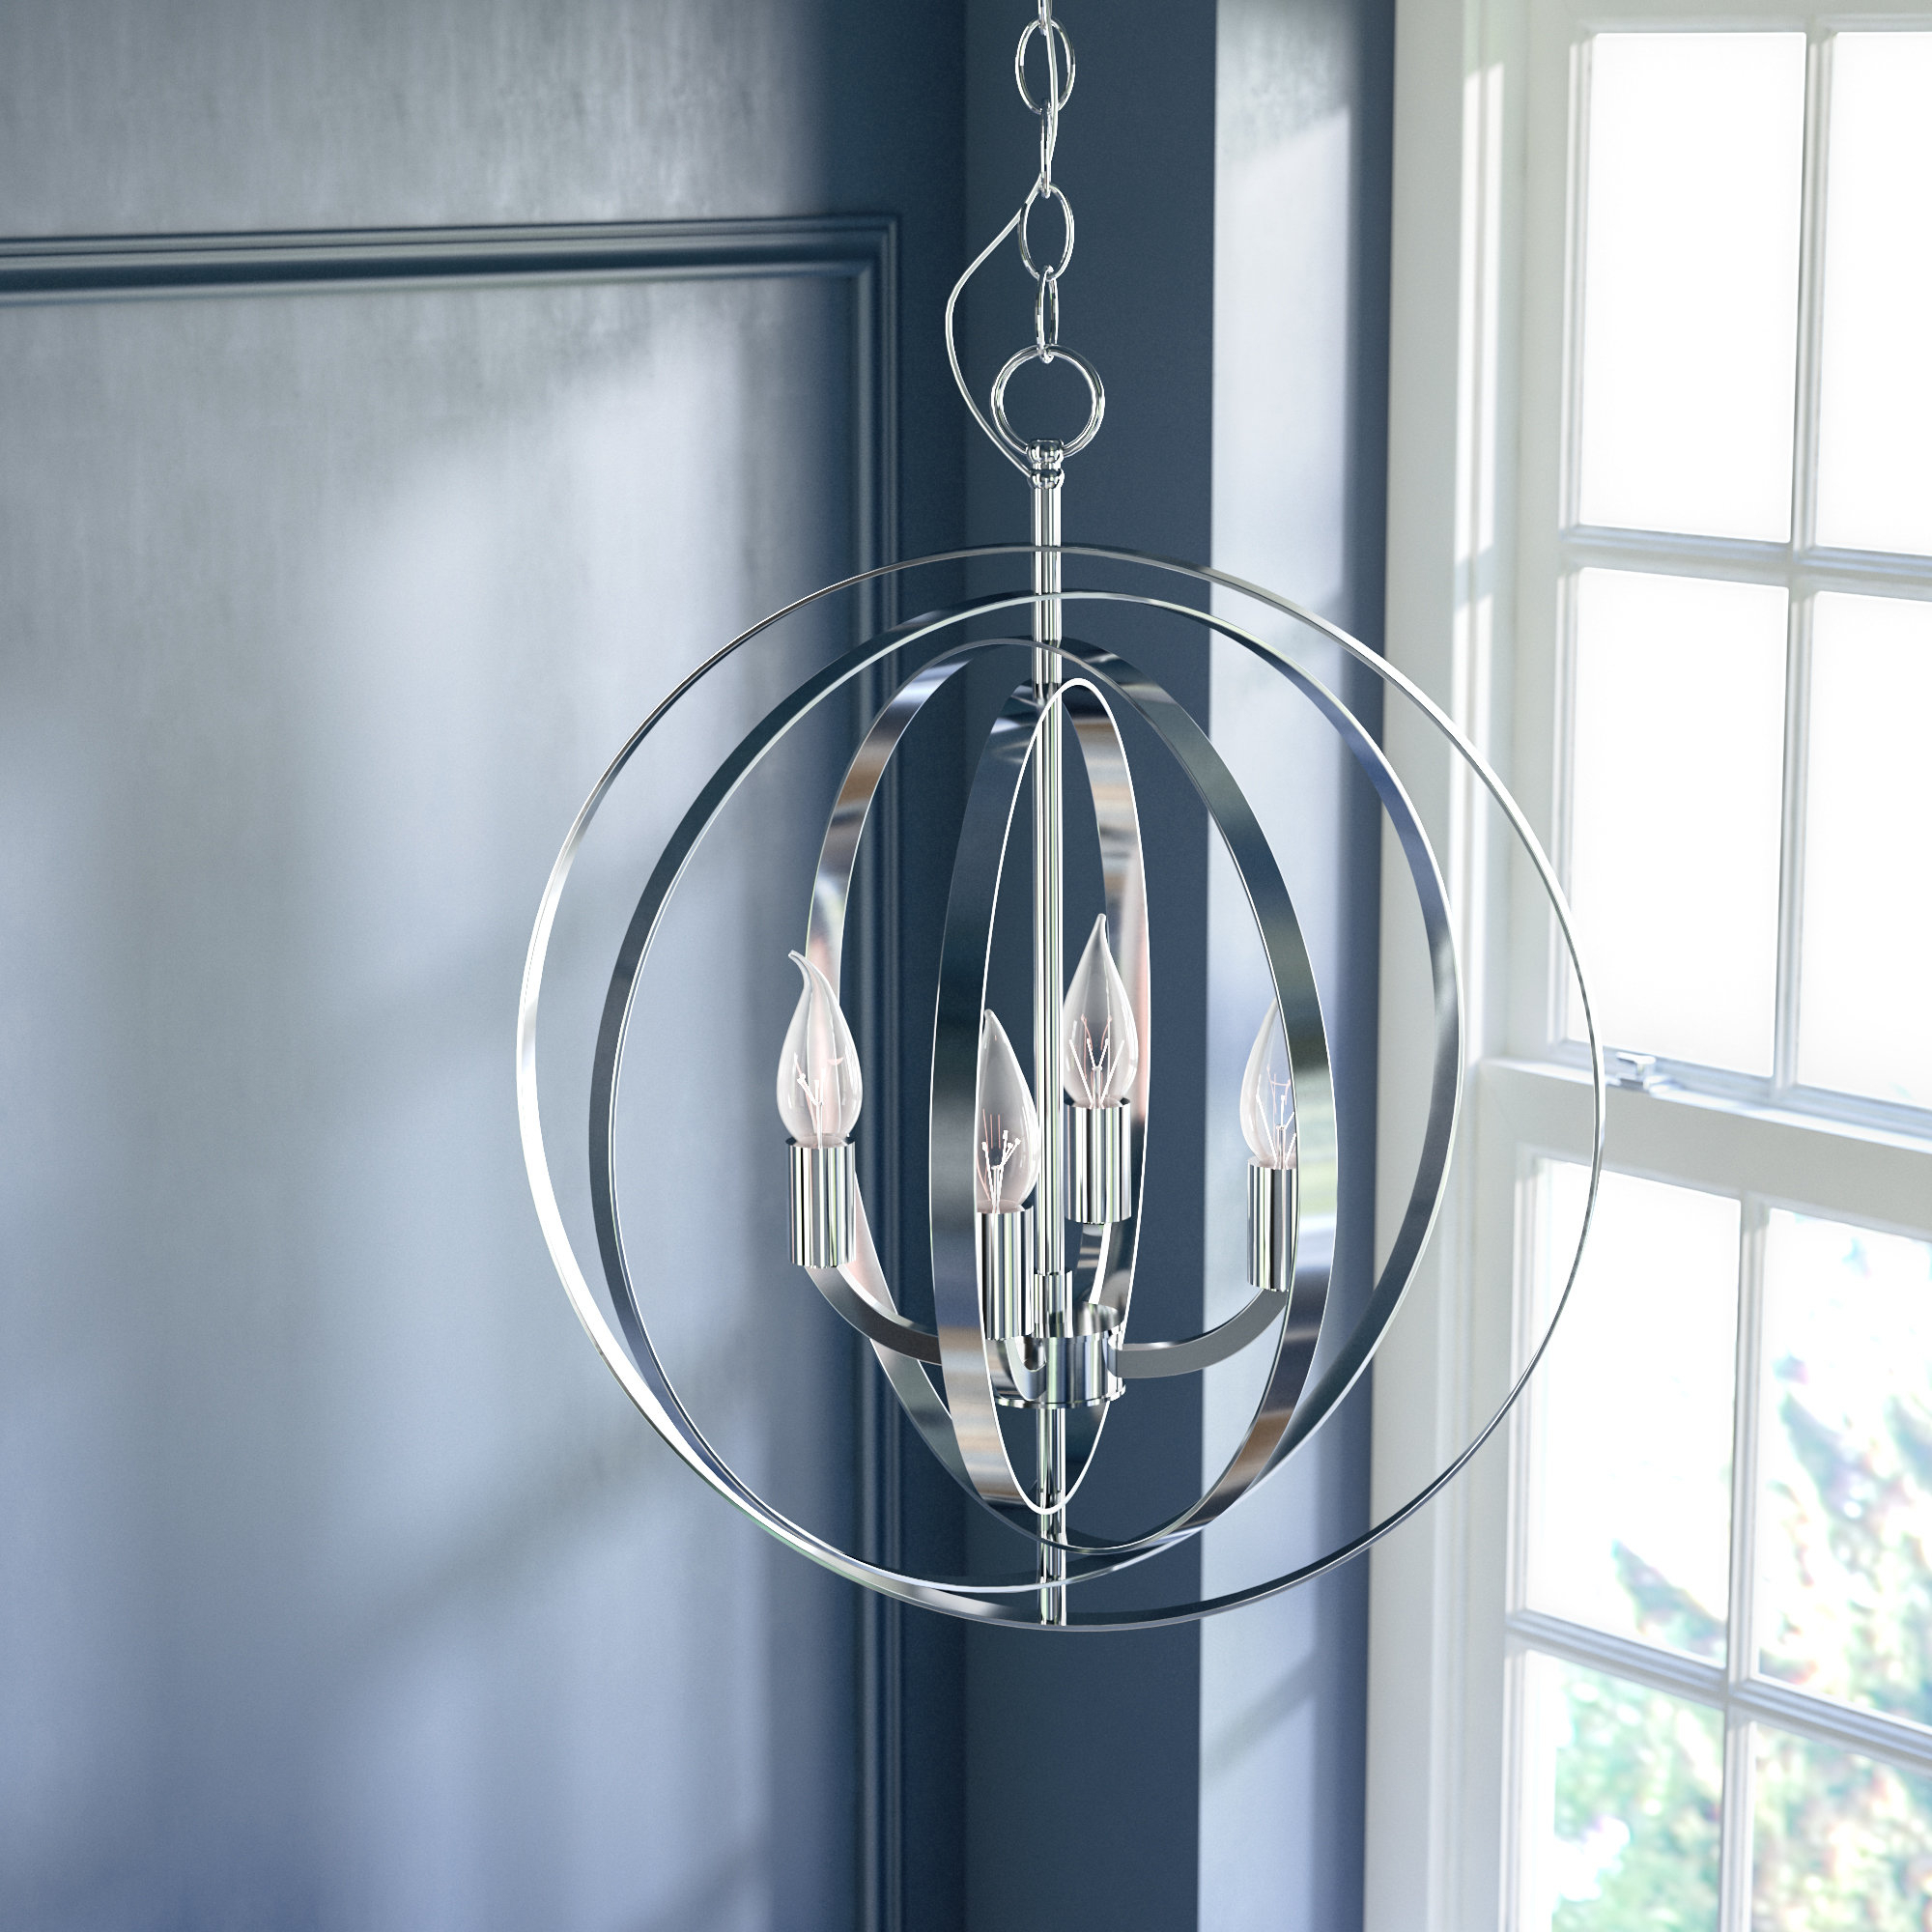 Hendry 4 Light Globe Chandelier Within Most Current Morganti 4 Light Chandeliers (View 5 of 20)